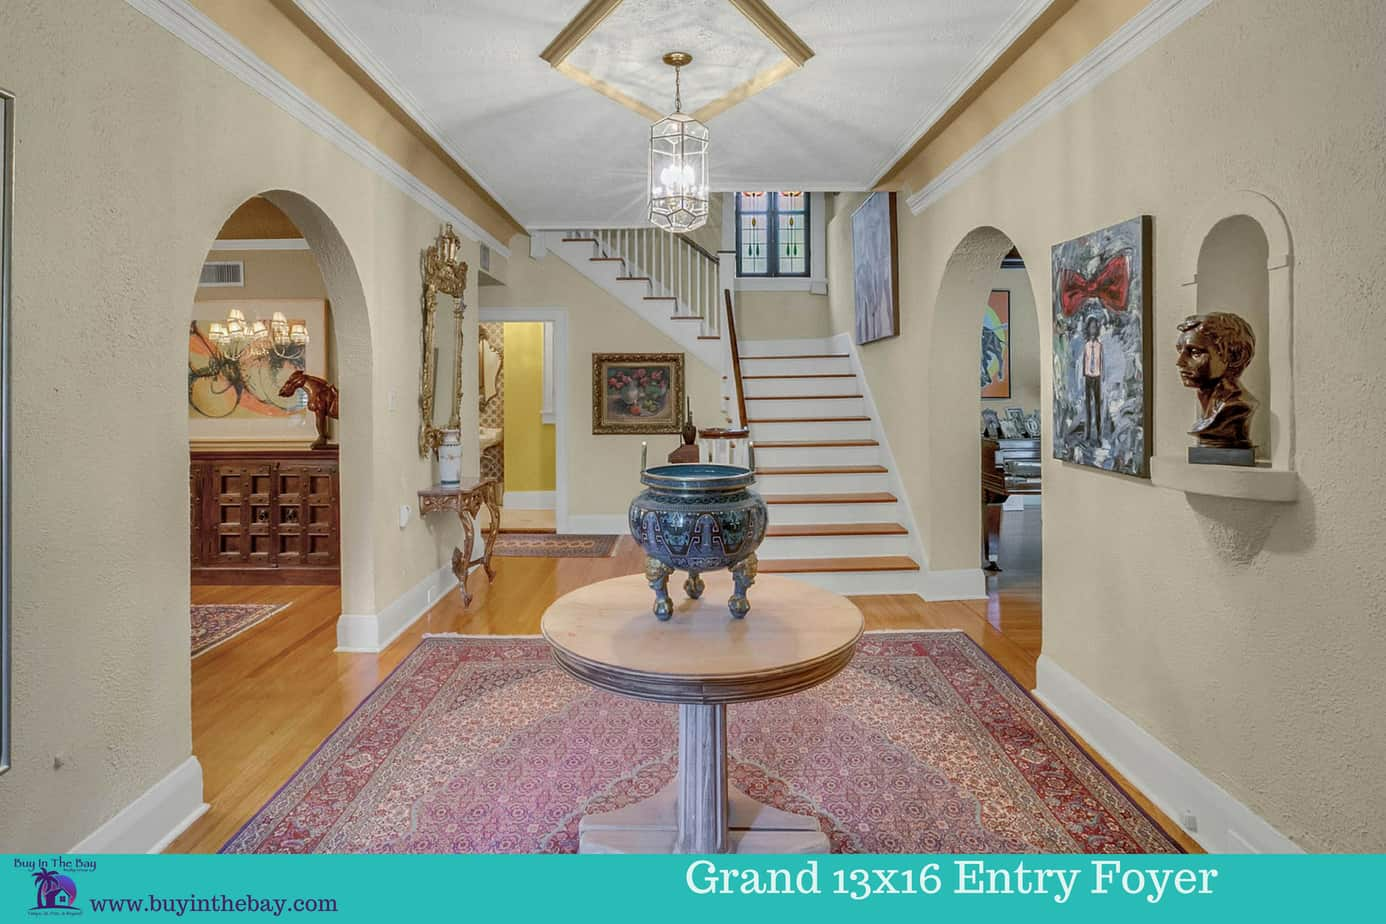 Image of the 13 x 16 foyer with a red rug, wood floors, staircase, and two arched doors, and table in middle for the home for sale at 4024 W Bay to Bay Blvd Tampa FL 33629 a historic Florida Home and a great example of a tampa bay luxury homes for sale. A perfect Example of a Historic Homes in Florida and a Tampa Bay Luxury Homes For sale.